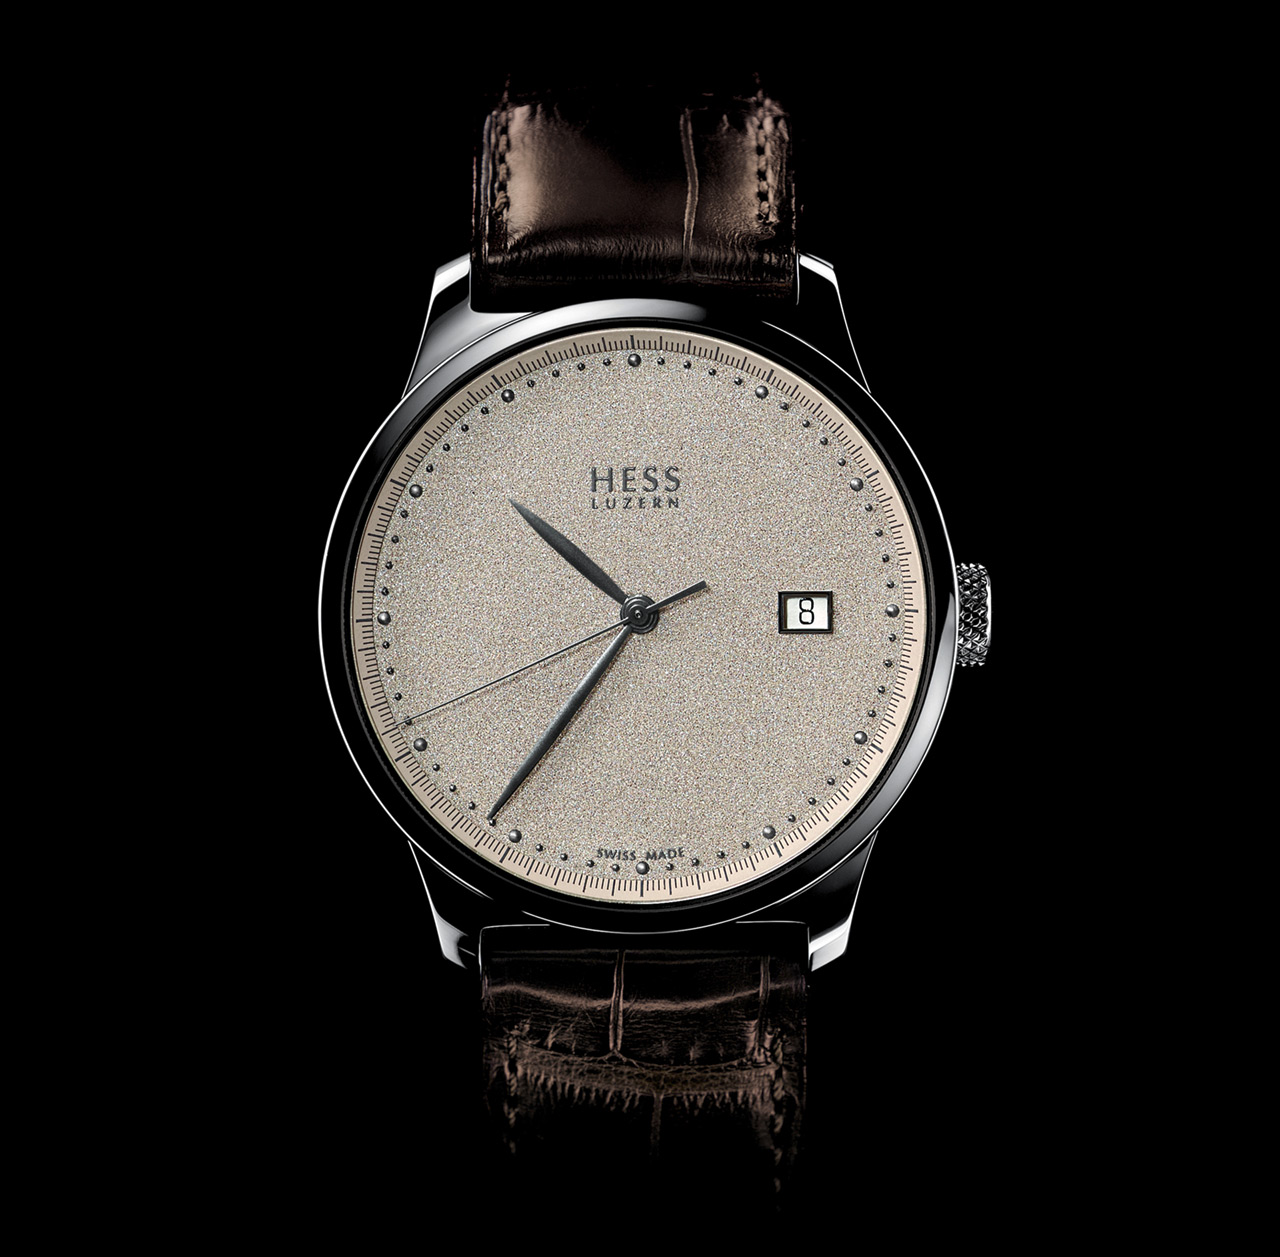 hess-uhr-automatik-two-2-champagne-anthrazitfarben-diamantstaub